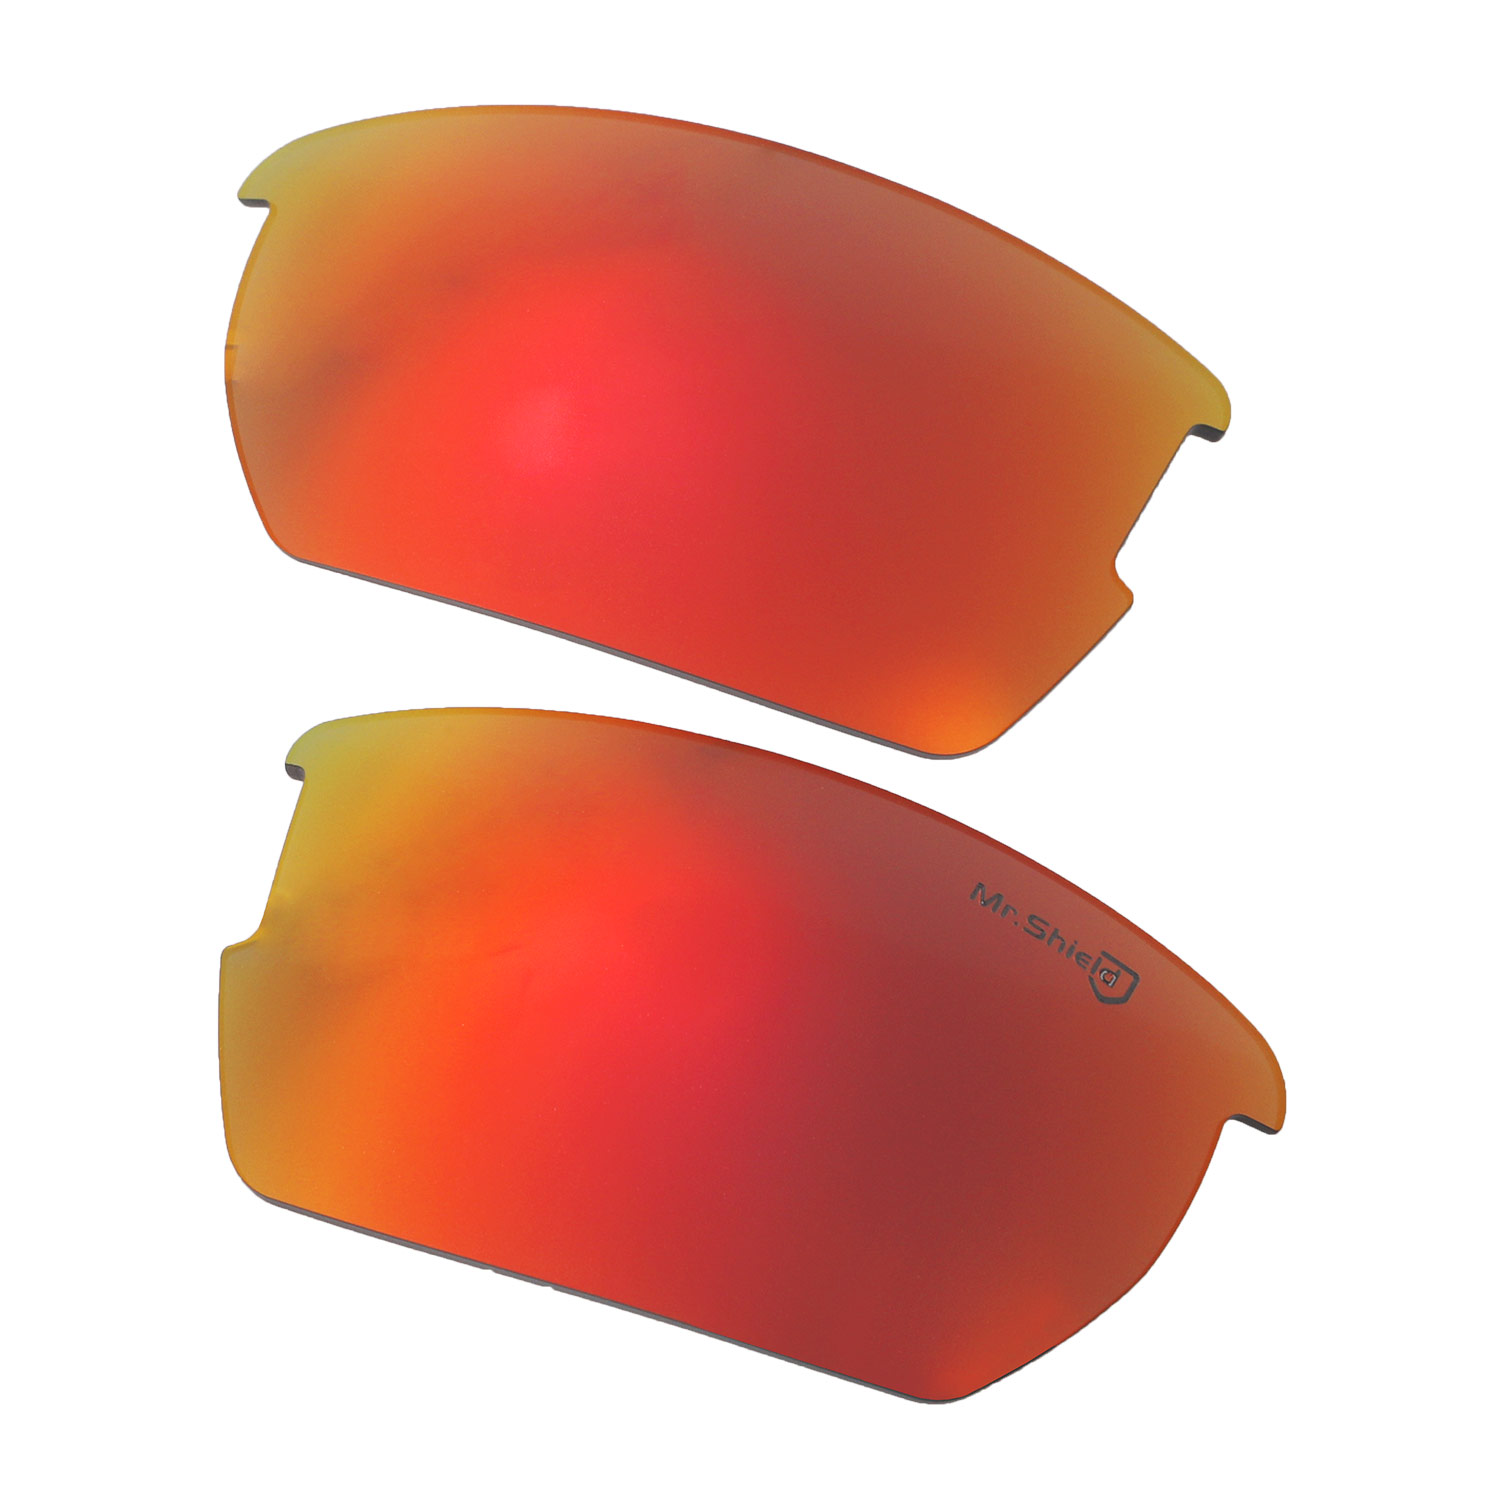 667e6c024ed Walleva Mr. Shield Polarized Fire Red Lenses for Wiley X Valor x1  Walleva  Microfiber Lens Cleaning Liquid x1